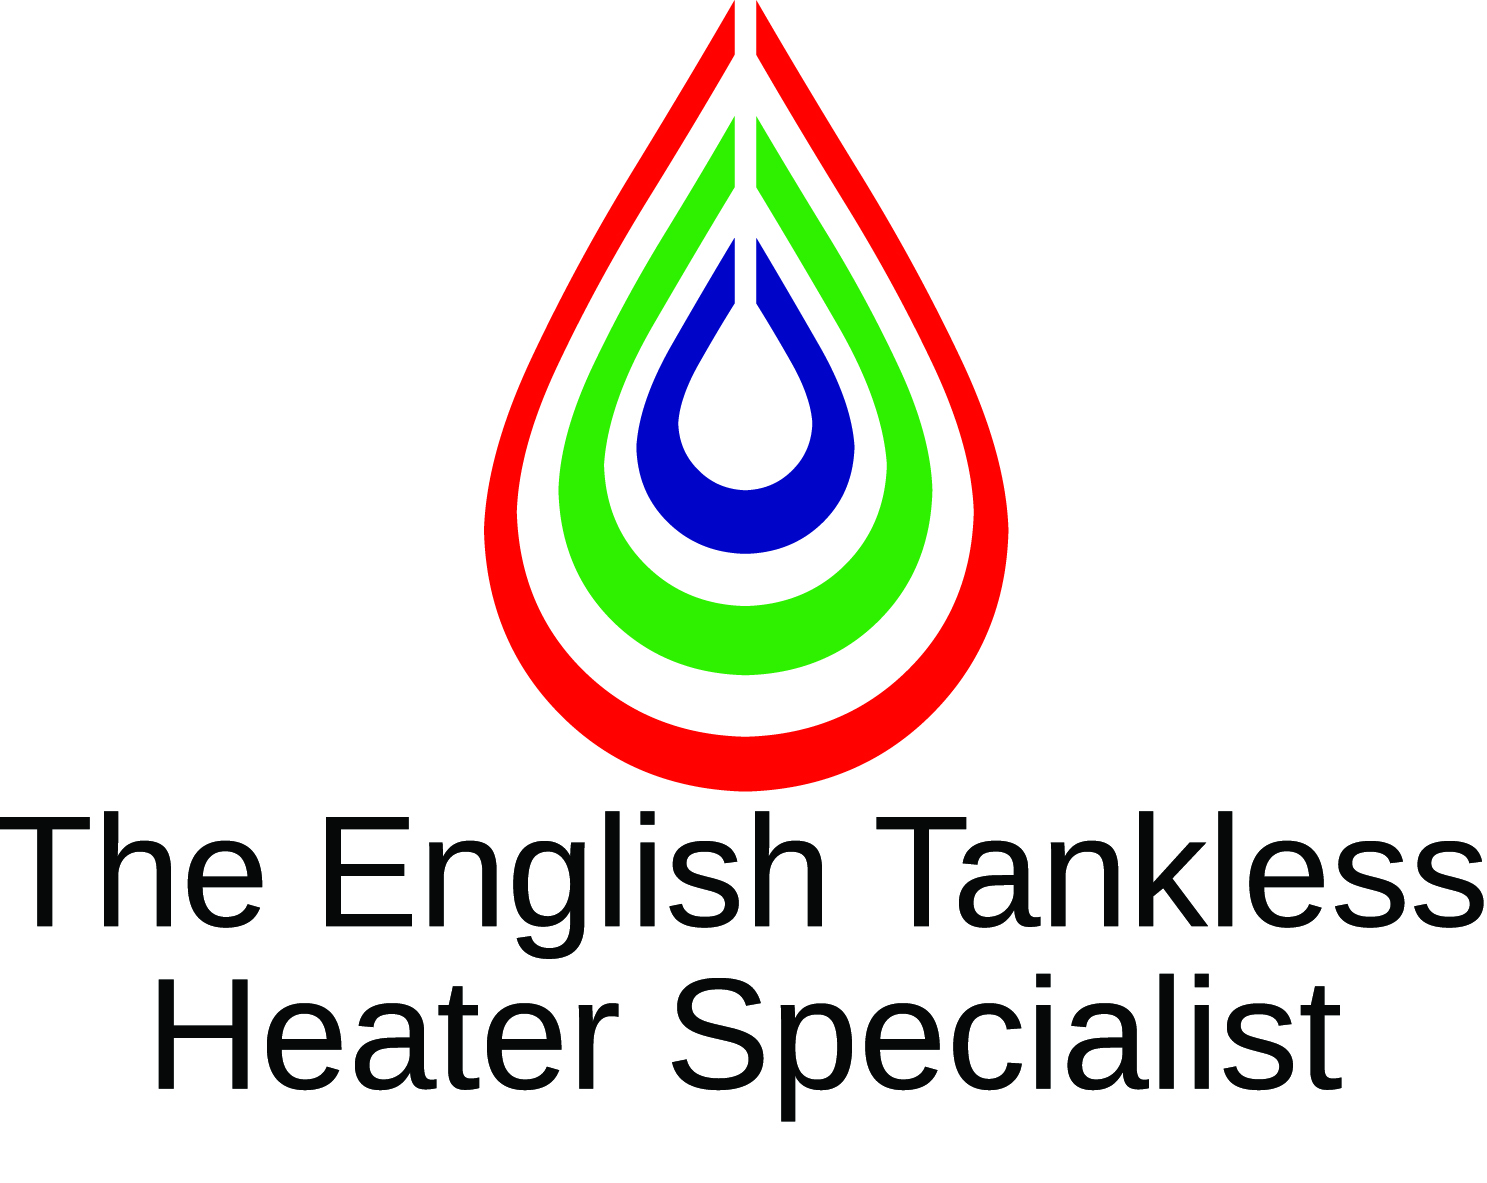 the-english-tankless-heater-specialist